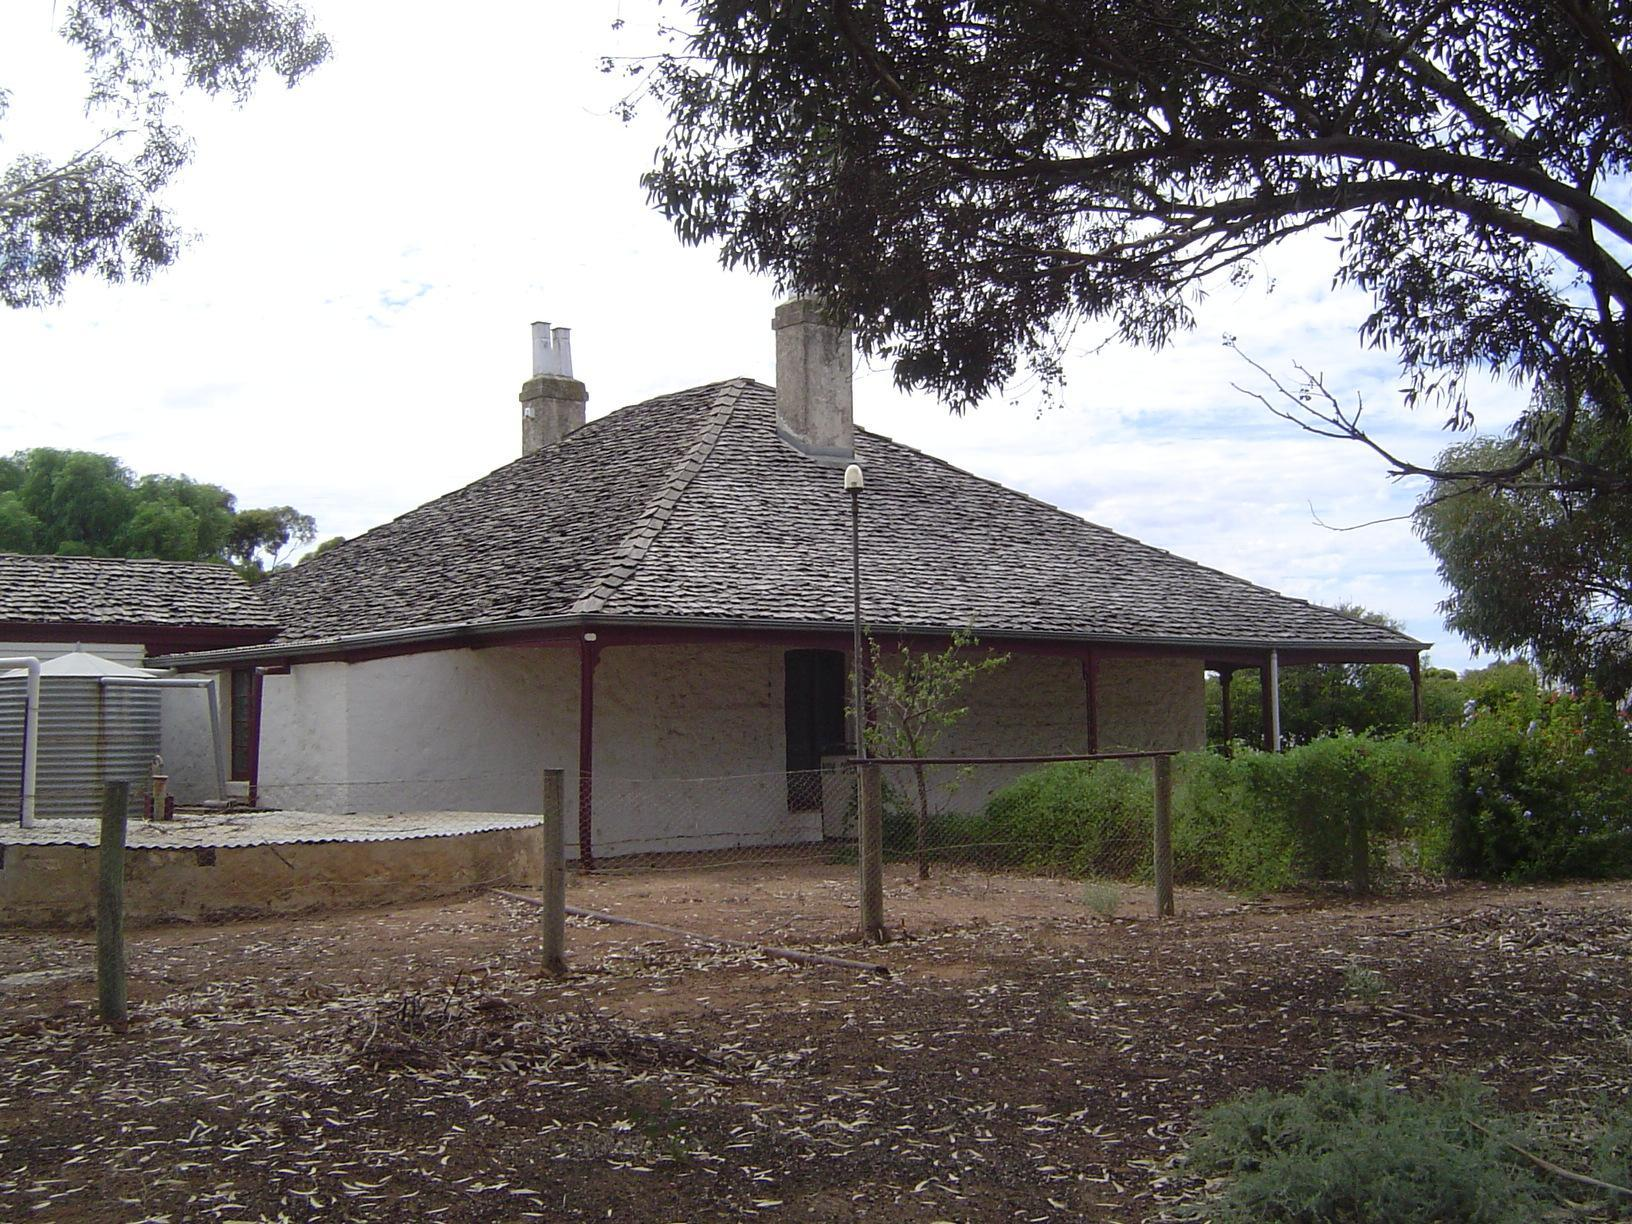 Kadina Australia  City new picture : Matta House 1863 , Kadina, Copper Triangle, South Australia